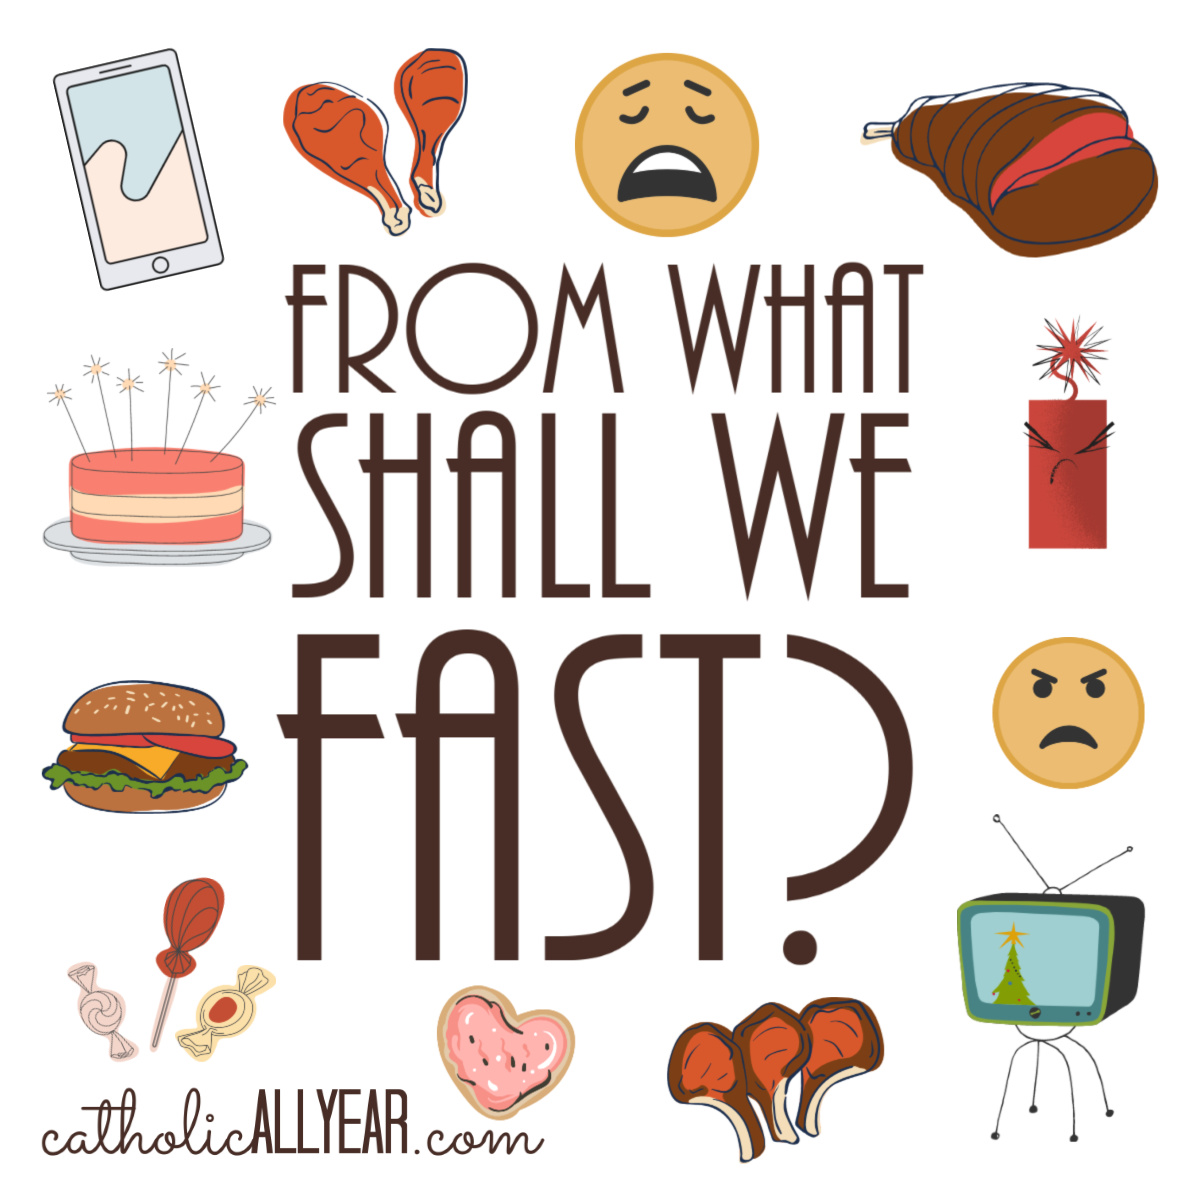 From What Shall We Fast?